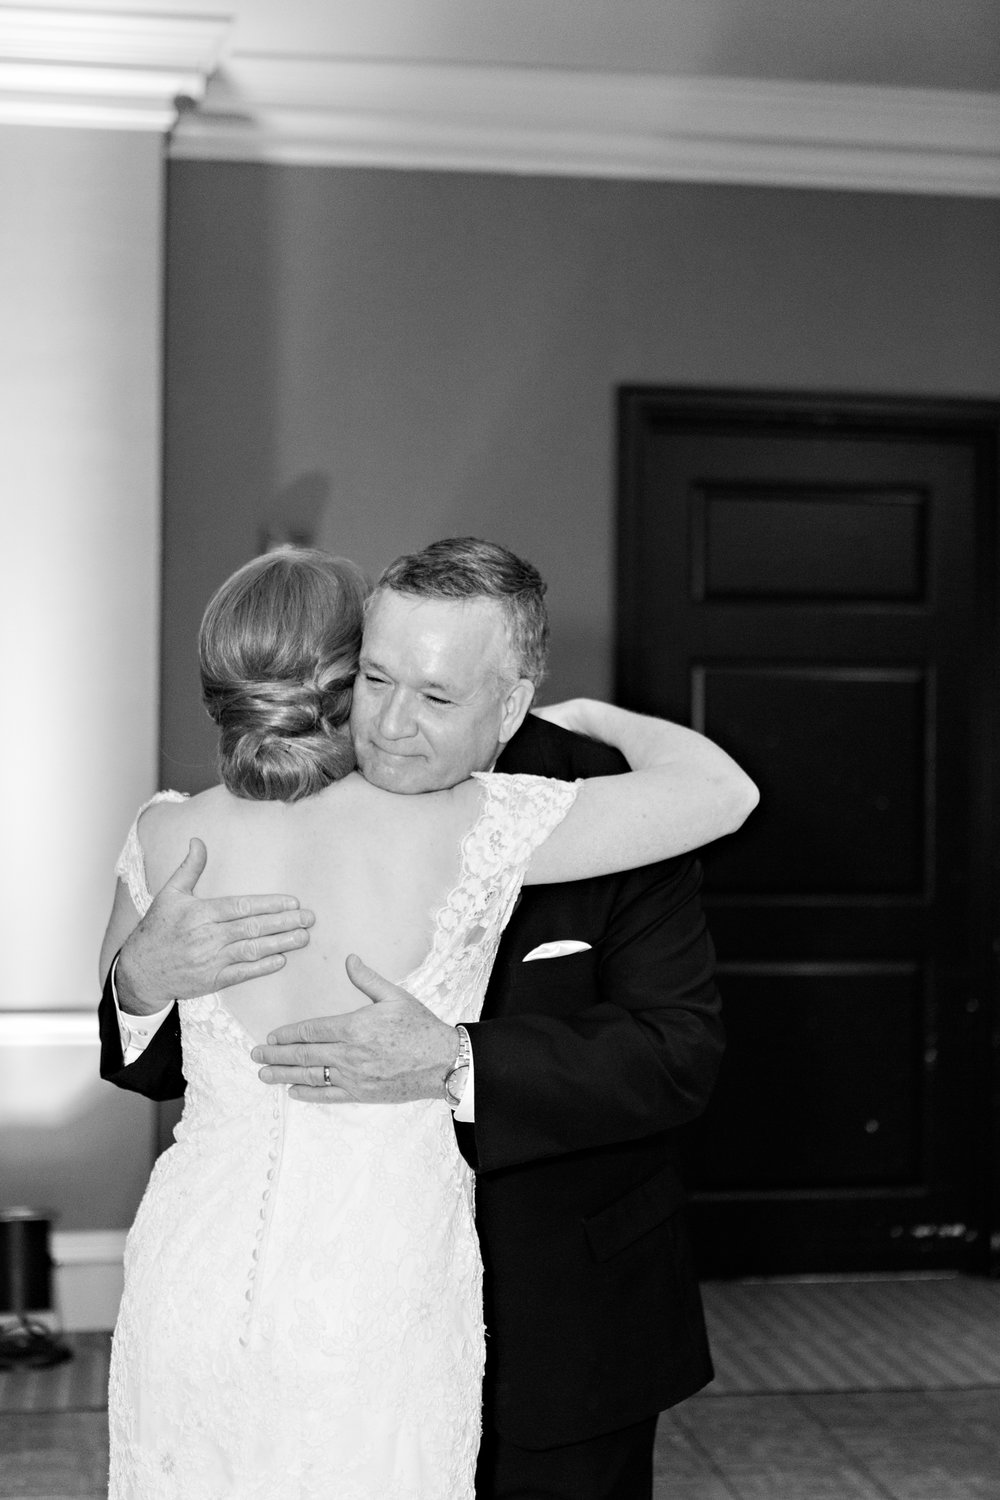 Matty-Drollette-Photography-Weddings-Montgomery-Alabama-132.jpg